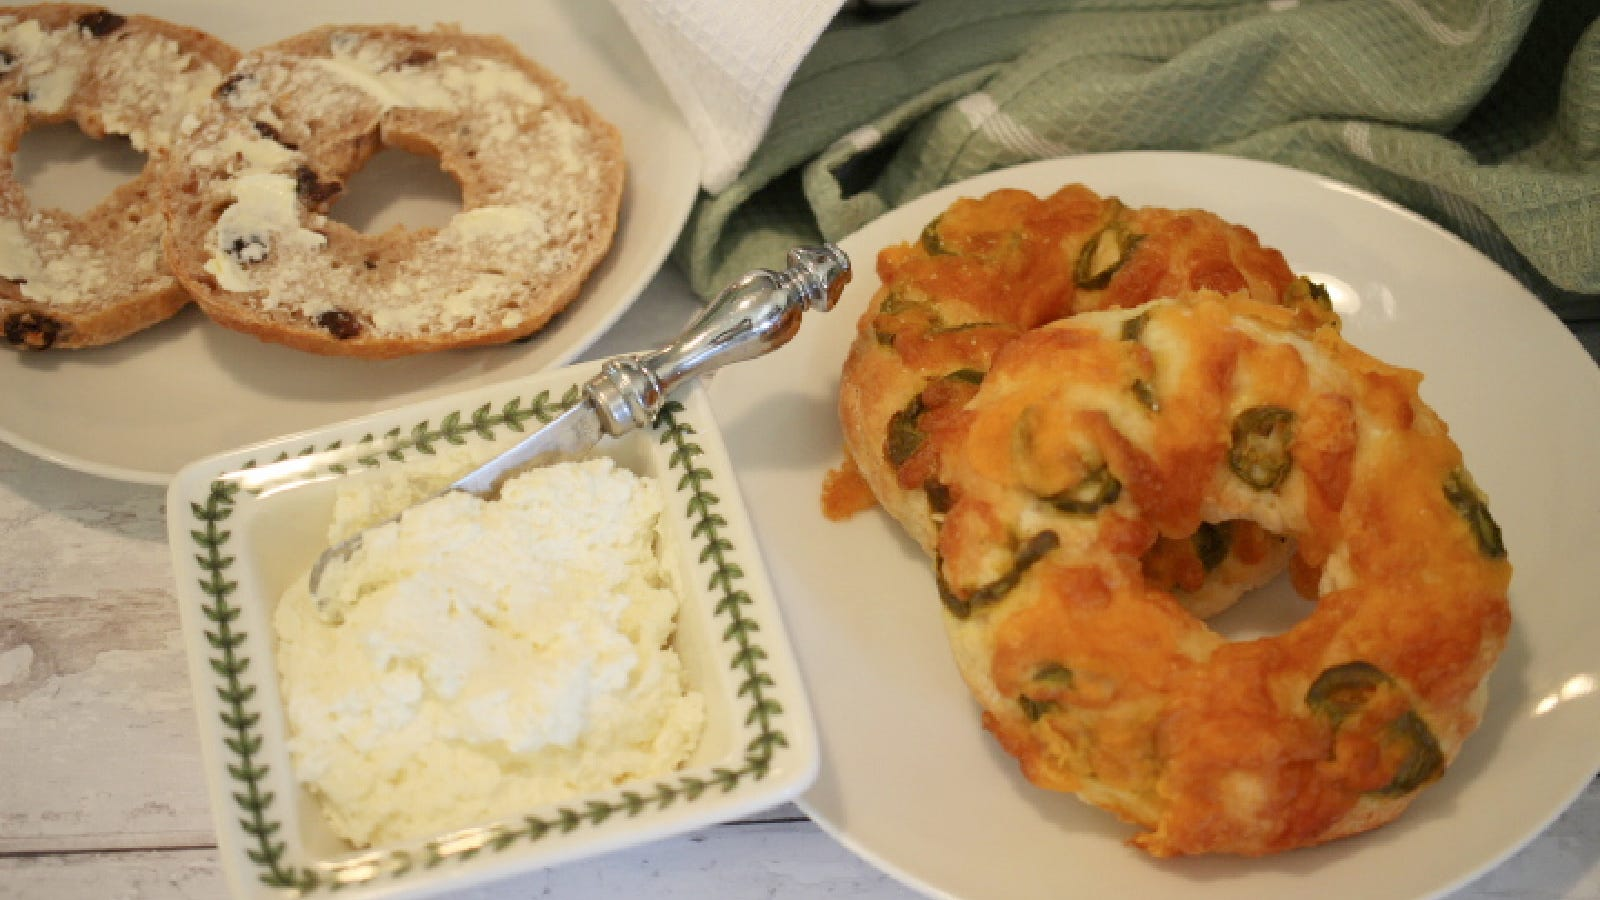 A jalapeno cheddar bagel next to a plate of cream cheese with a cinnamon raising bagel in in the background.